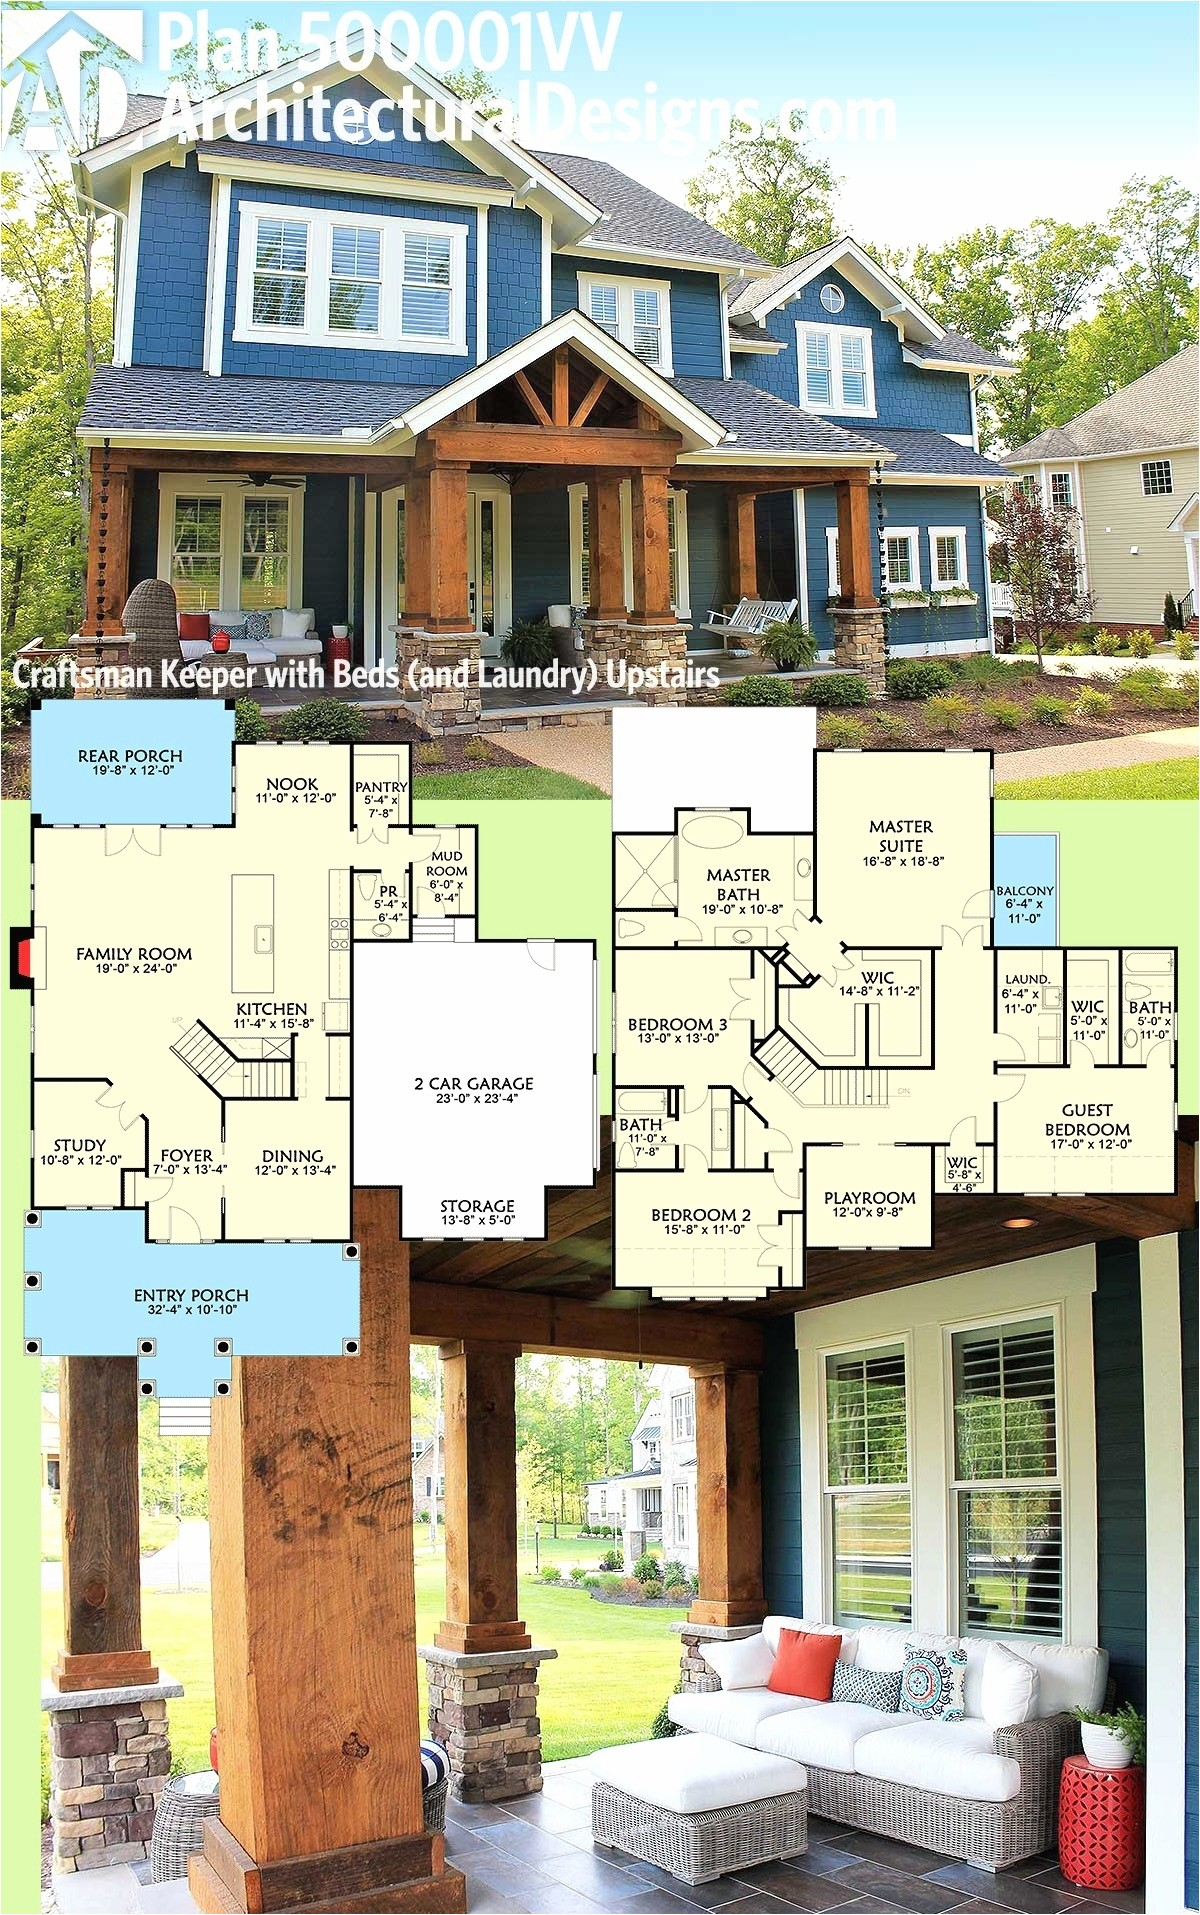 luxury homes plans 60 unique house plans with porch house plans design 2018 house